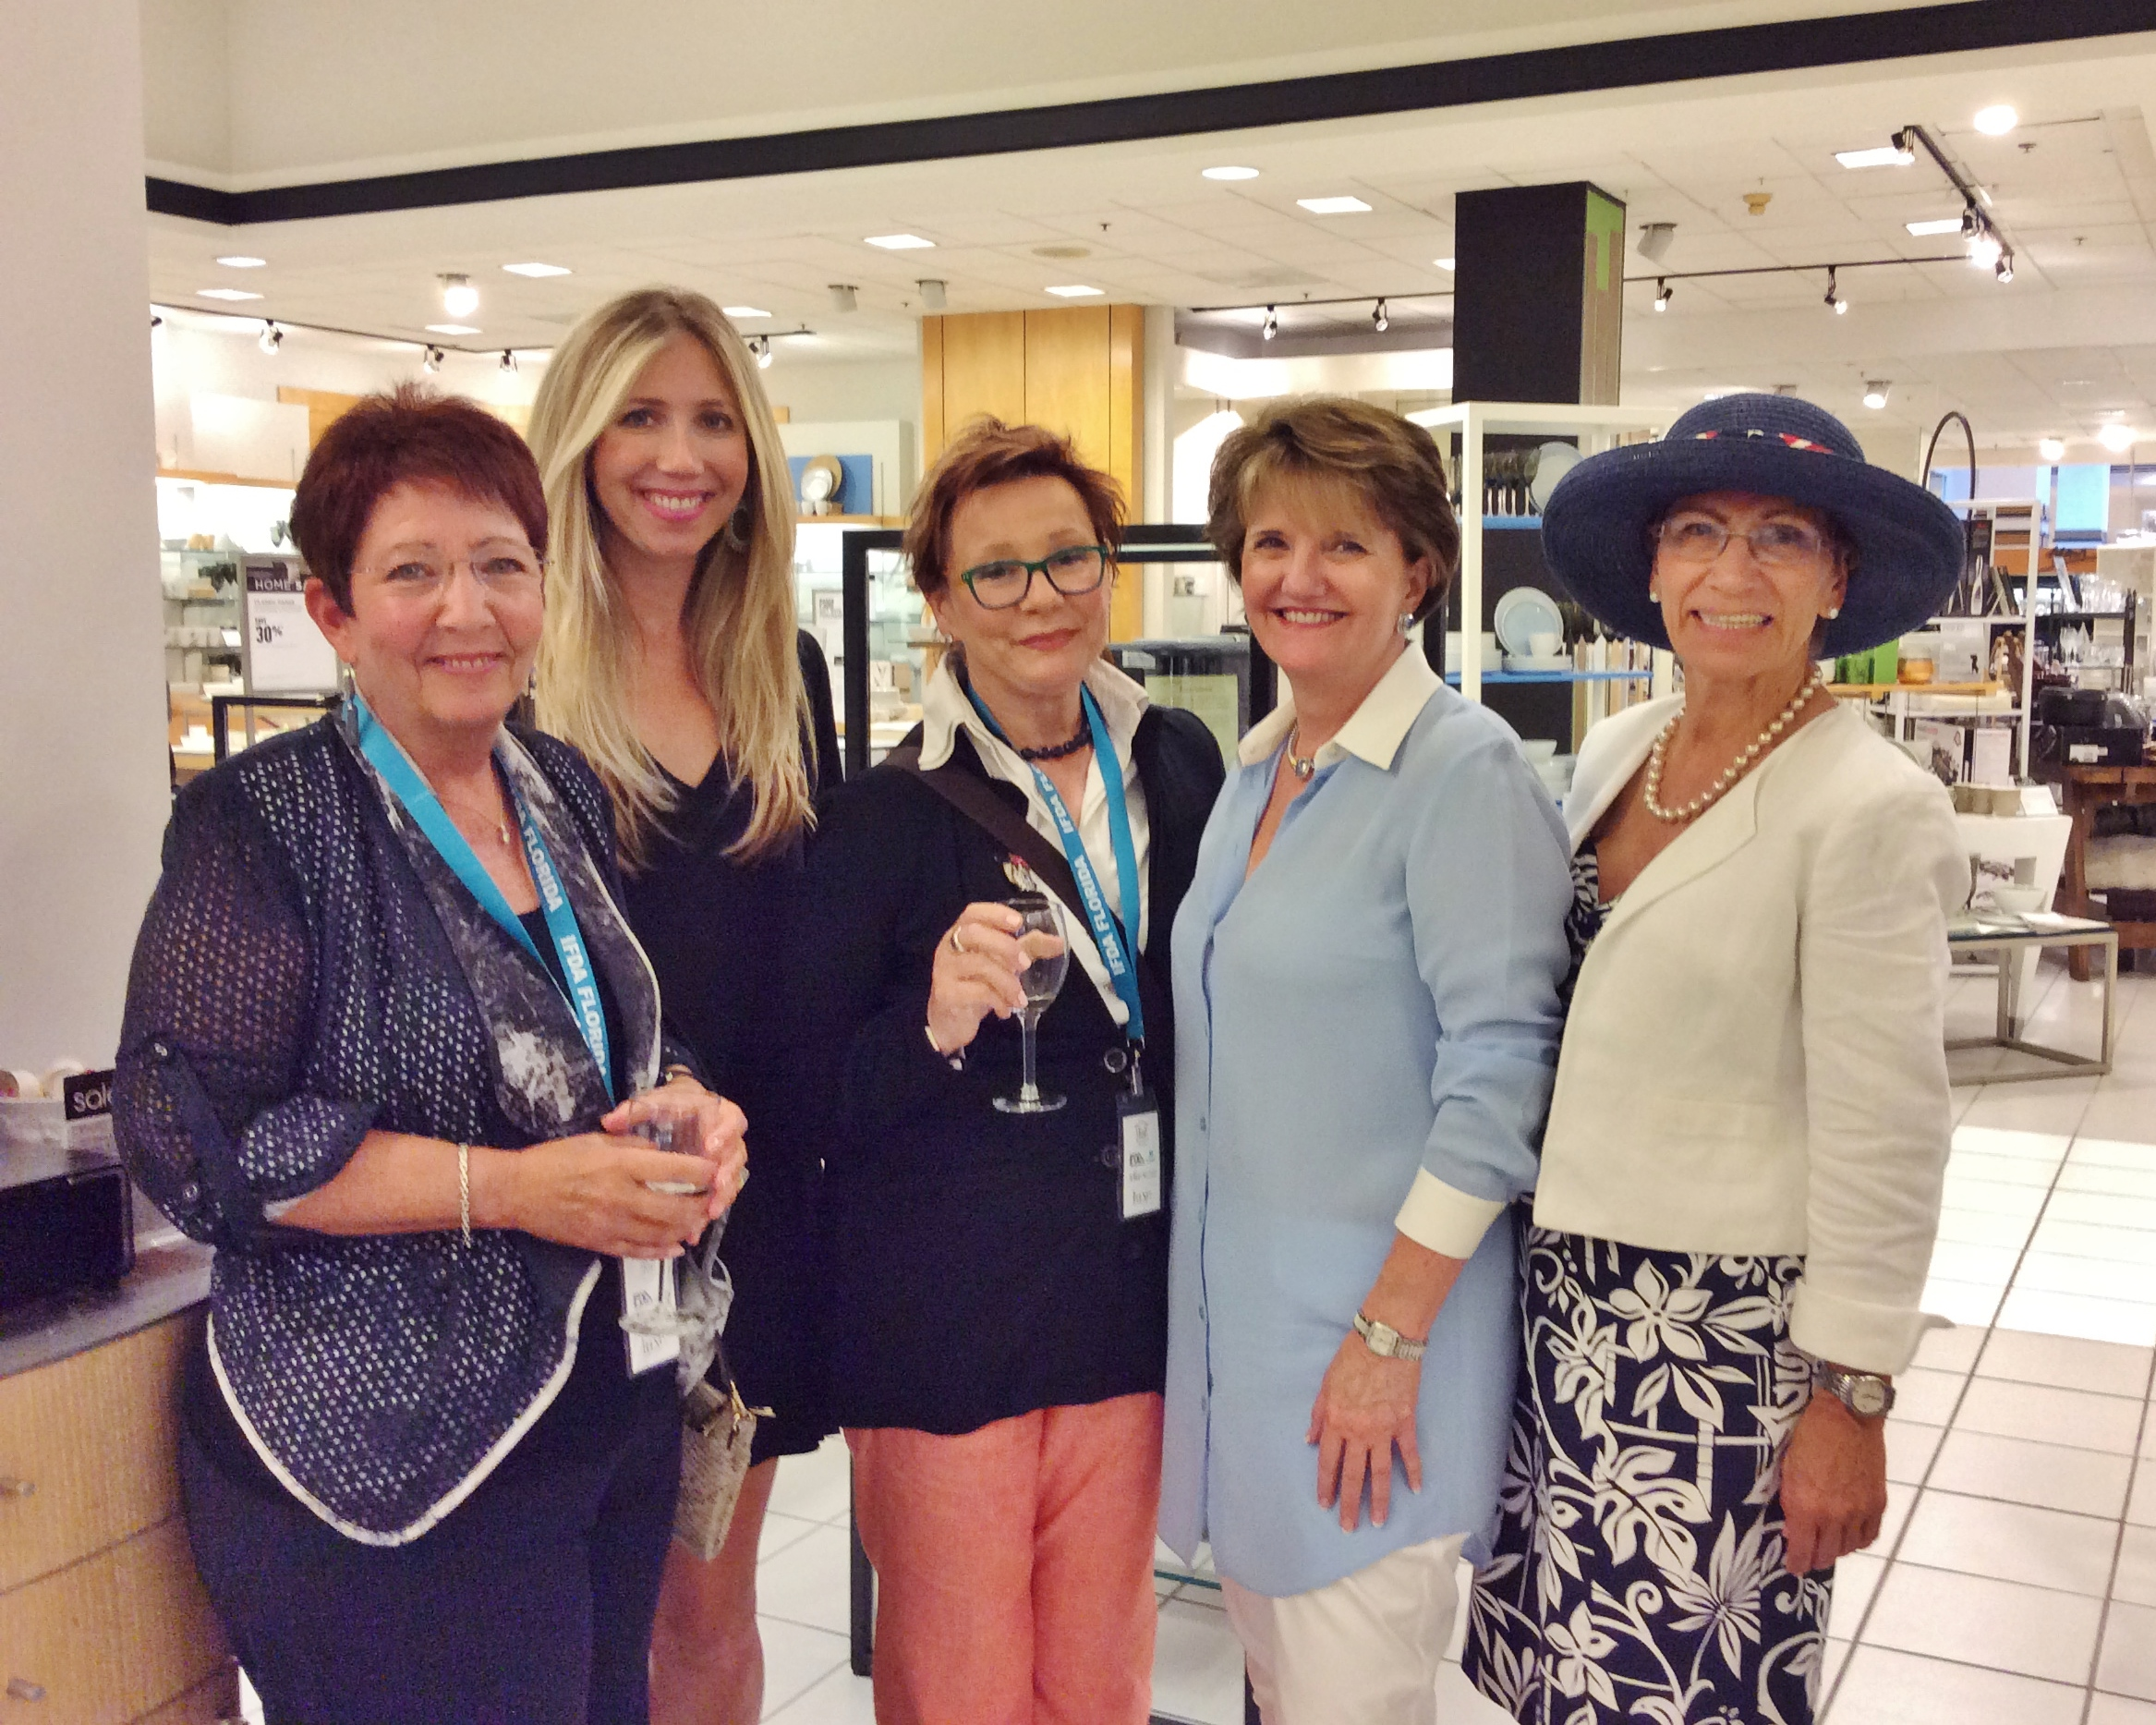 Bloomingdales Hosts Florida Ifda At A Special Culinary Event